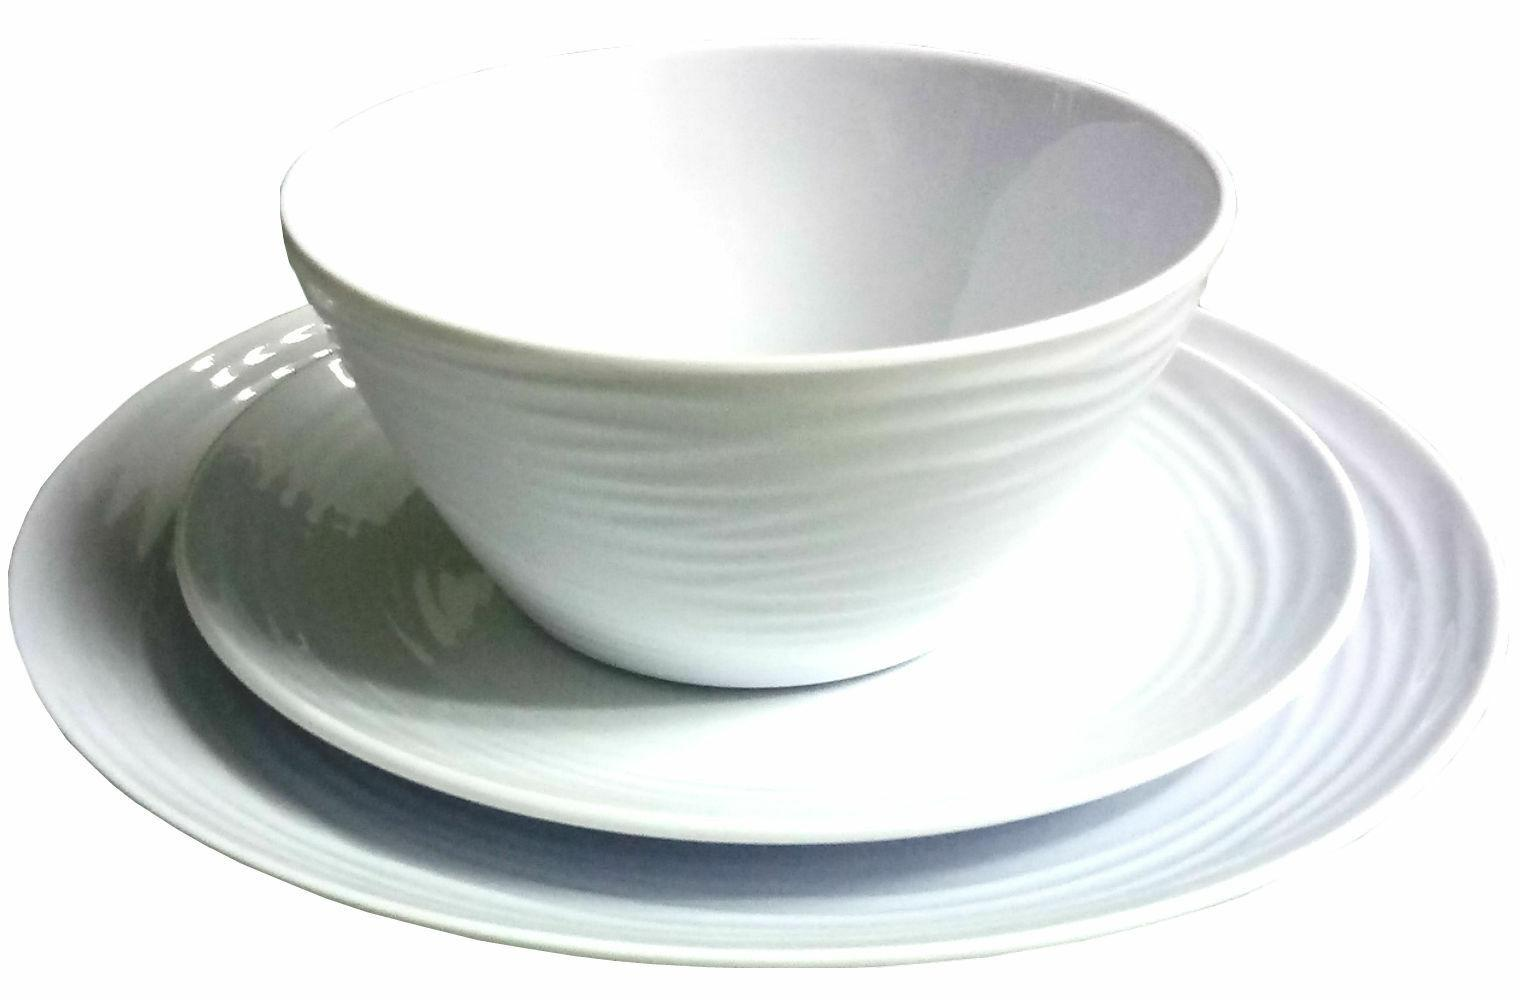 Parhoma Piece White Melamine Dinnerware Set People